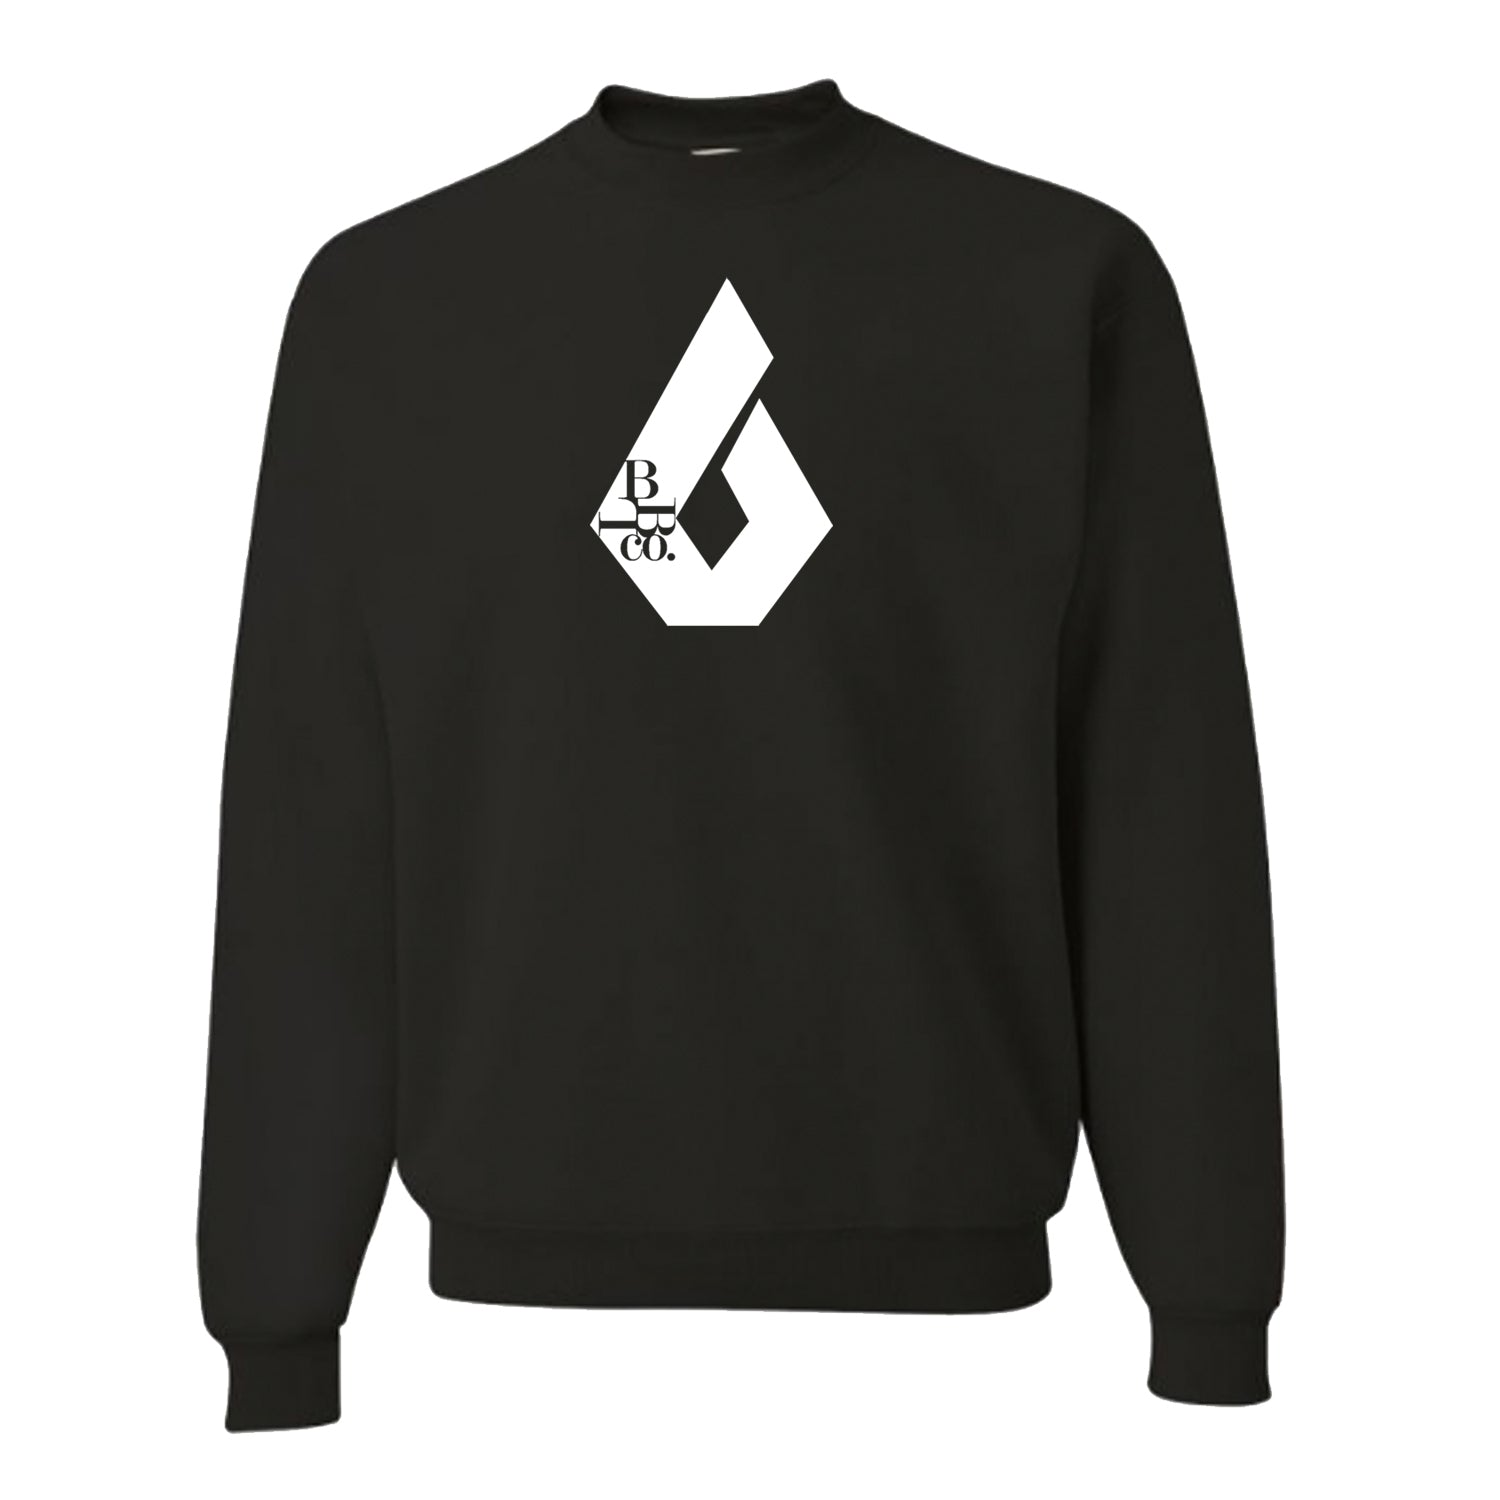 Boys The B Collection BOLD Crewneck Sweatshirt - LBBco - ClassyURBANWear